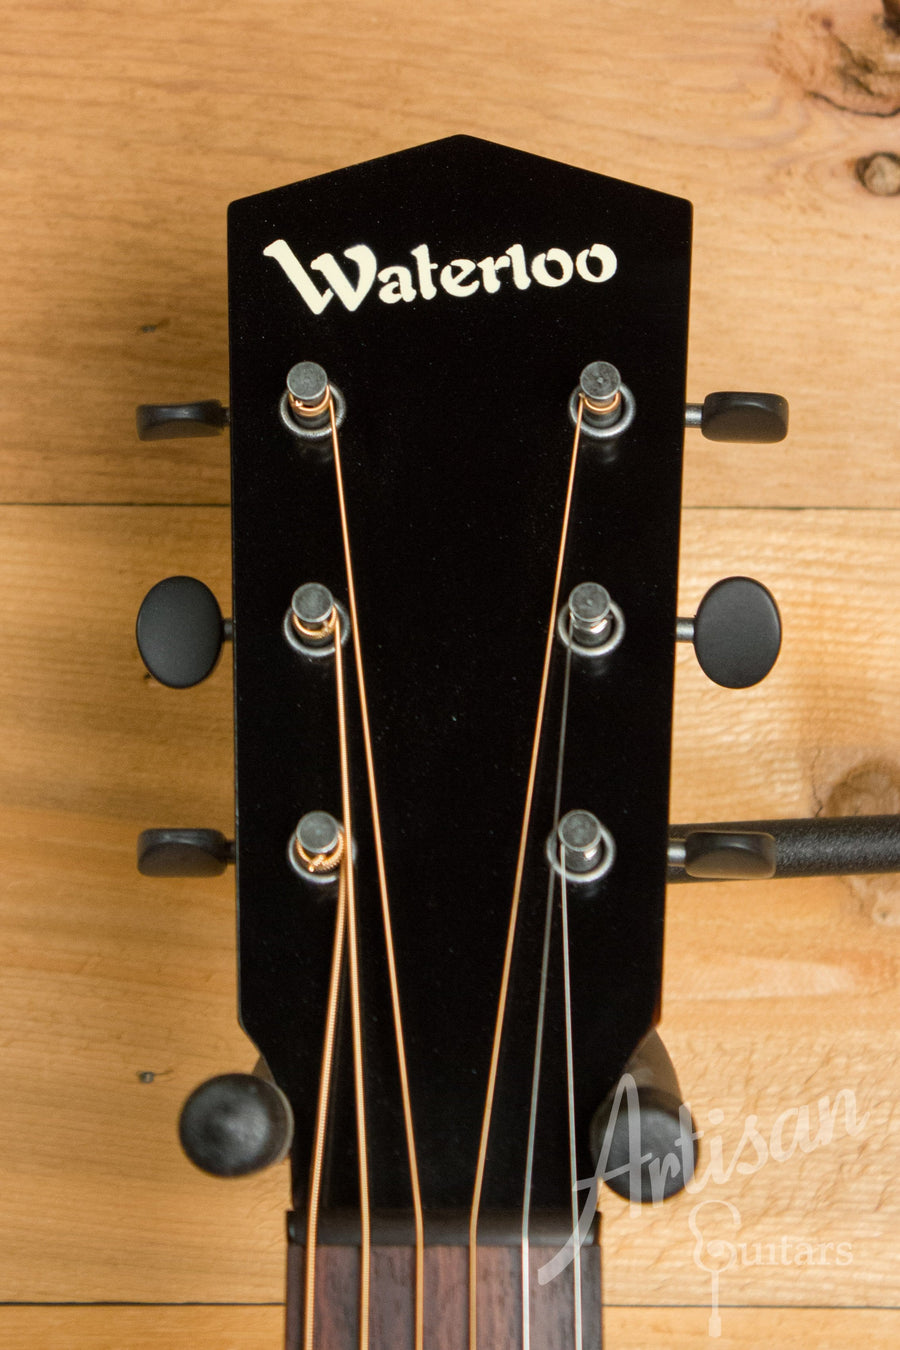 Waterloo WL-12X Maple Guitar with Truss Rod and Sunburst Finish ID-10944 - Artisan Guitars